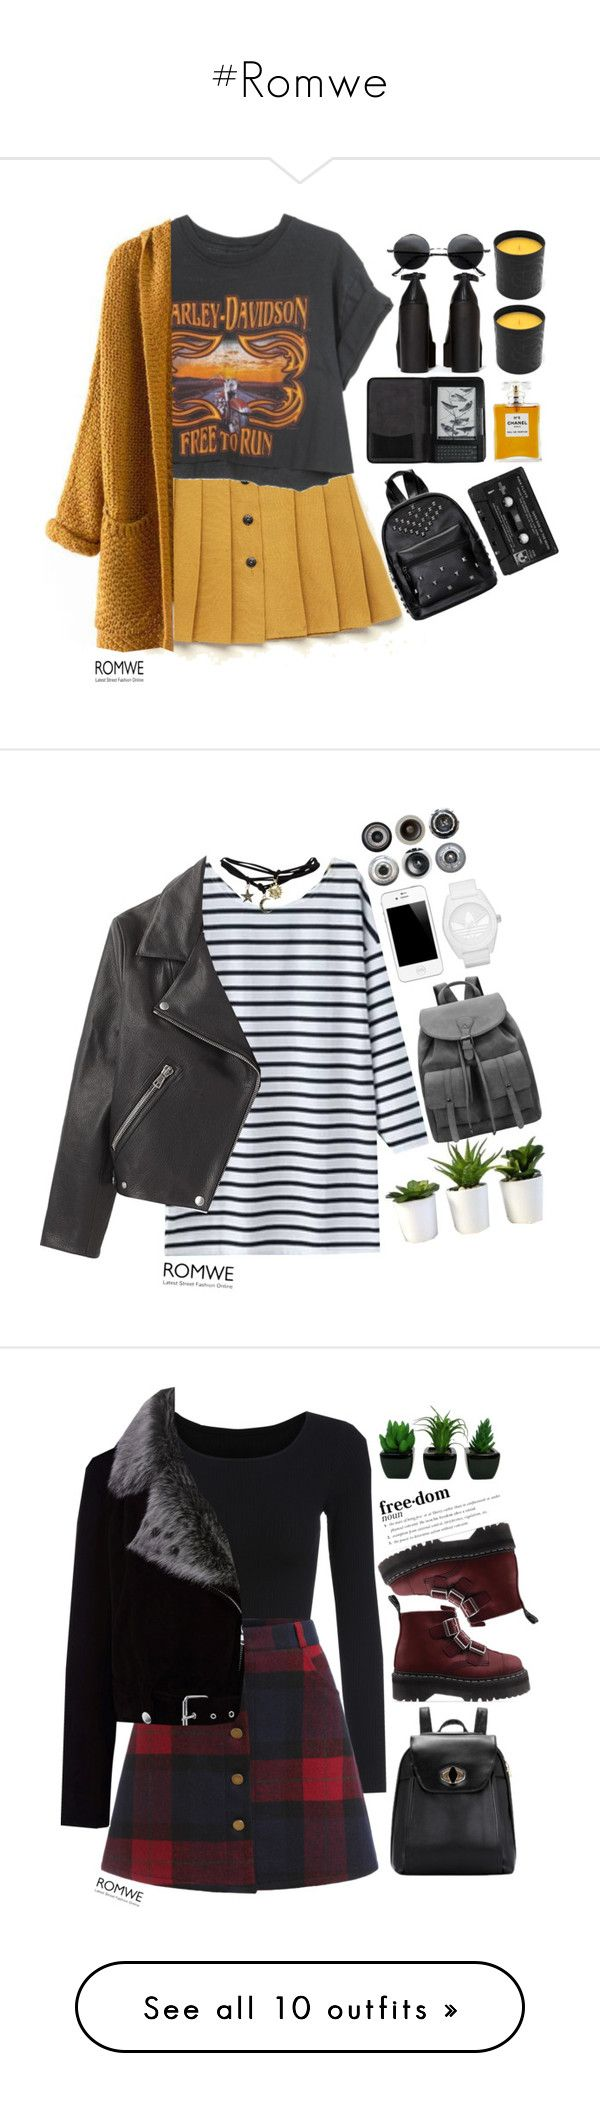 """#Romwe"" by credentovideos ❤ liked on Polyvore featuring Harley-Davidson, Floyd, Cole Haan, Retrò, Jeffrey Campbell, Nicole Miller, Chanel, Acne Studios, adidas Originals and Wet Seal"